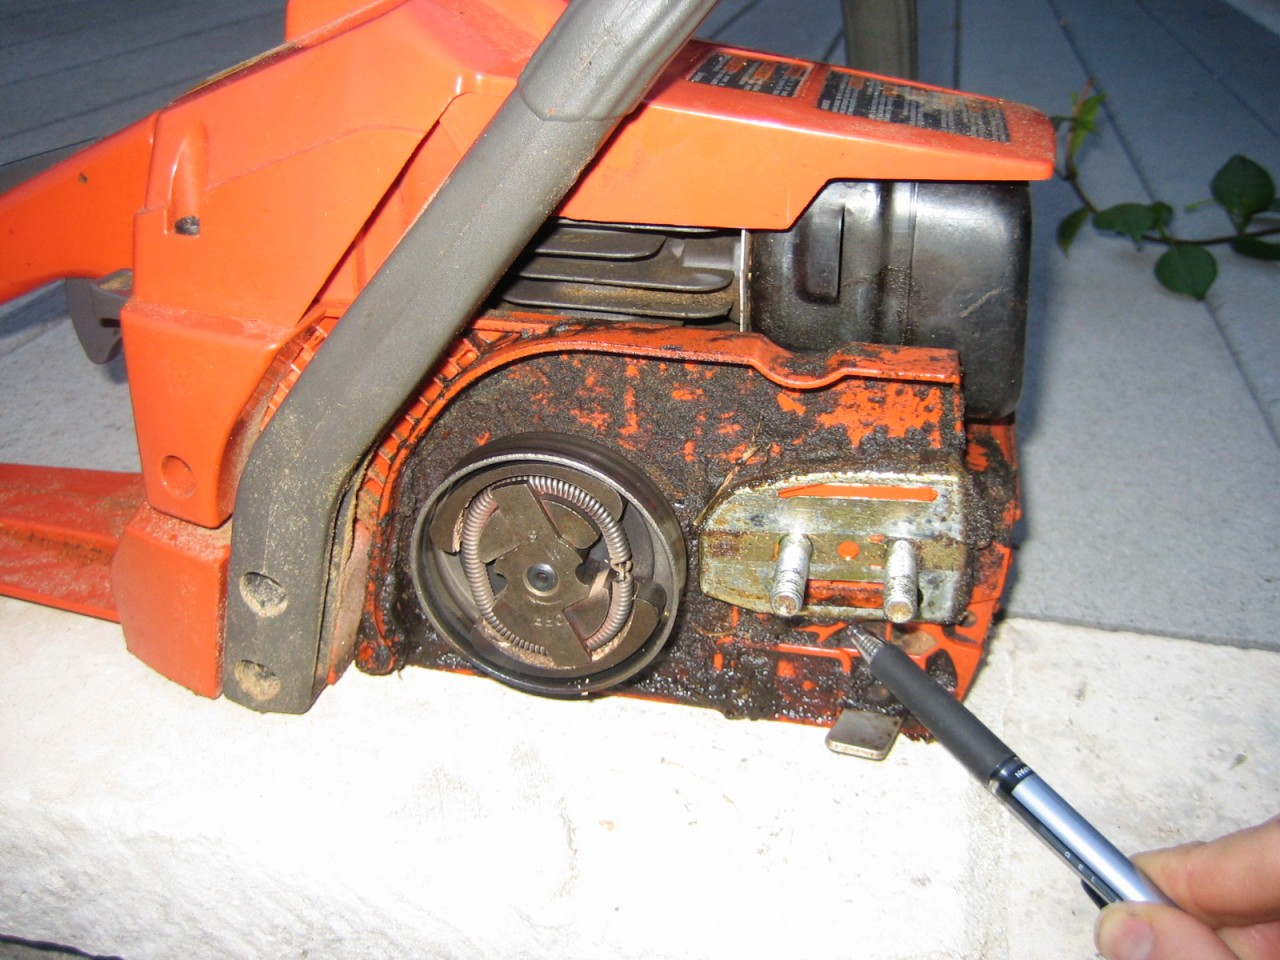 Husqvarna 141 chainsaw no oil on barchain chainsaws forum service maintenance question john husqvarna 141 chainsaw greentooth